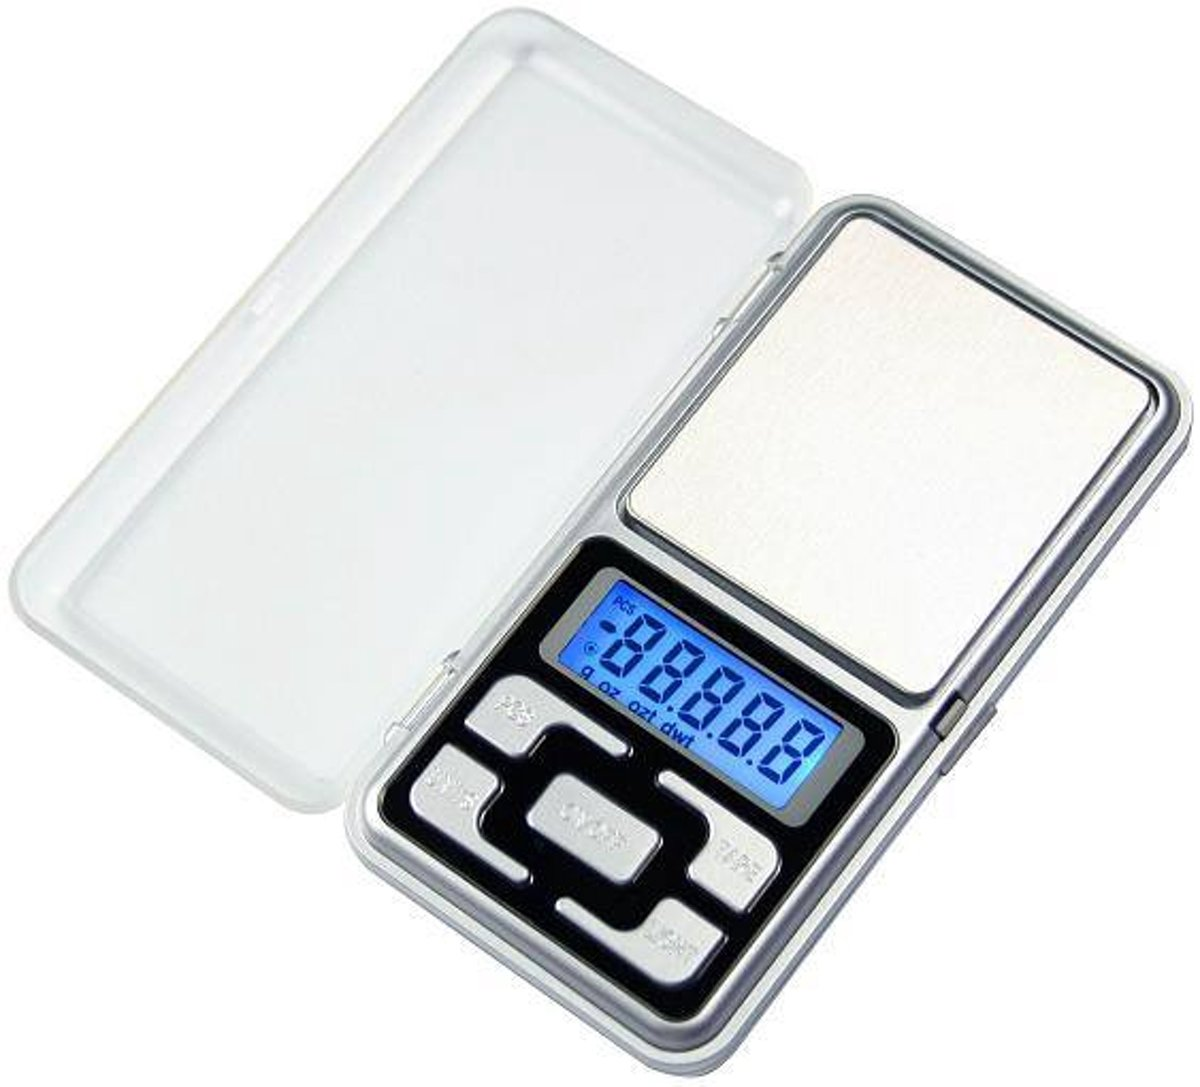 Digitale Precisie Portable Weegschaal 200g - 0.01g